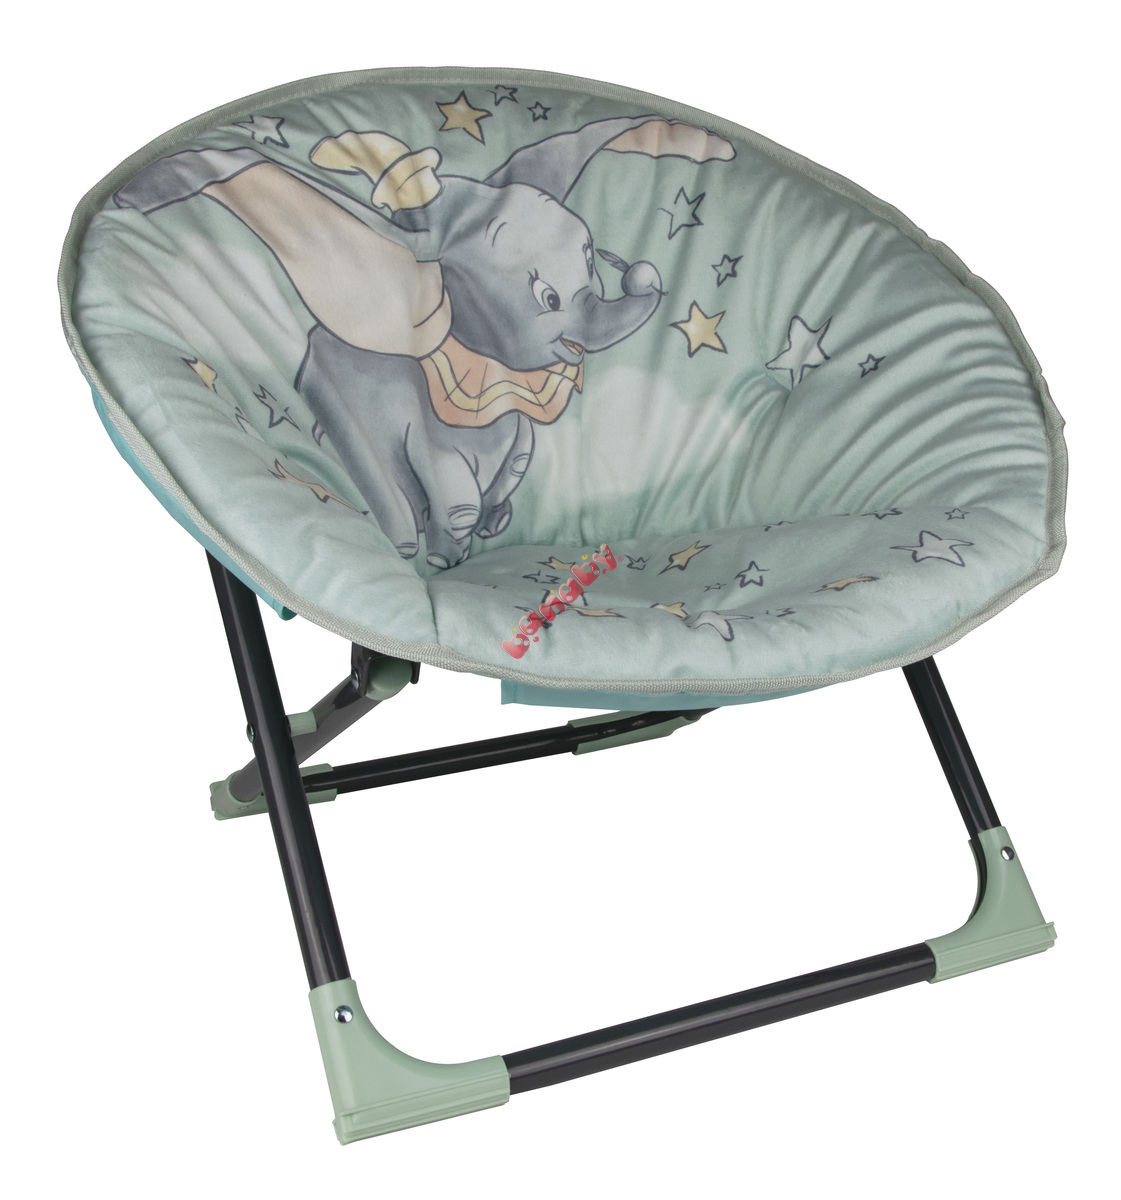 Swell Folding Armchair Dumbo Caraccident5 Cool Chair Designs And Ideas Caraccident5Info